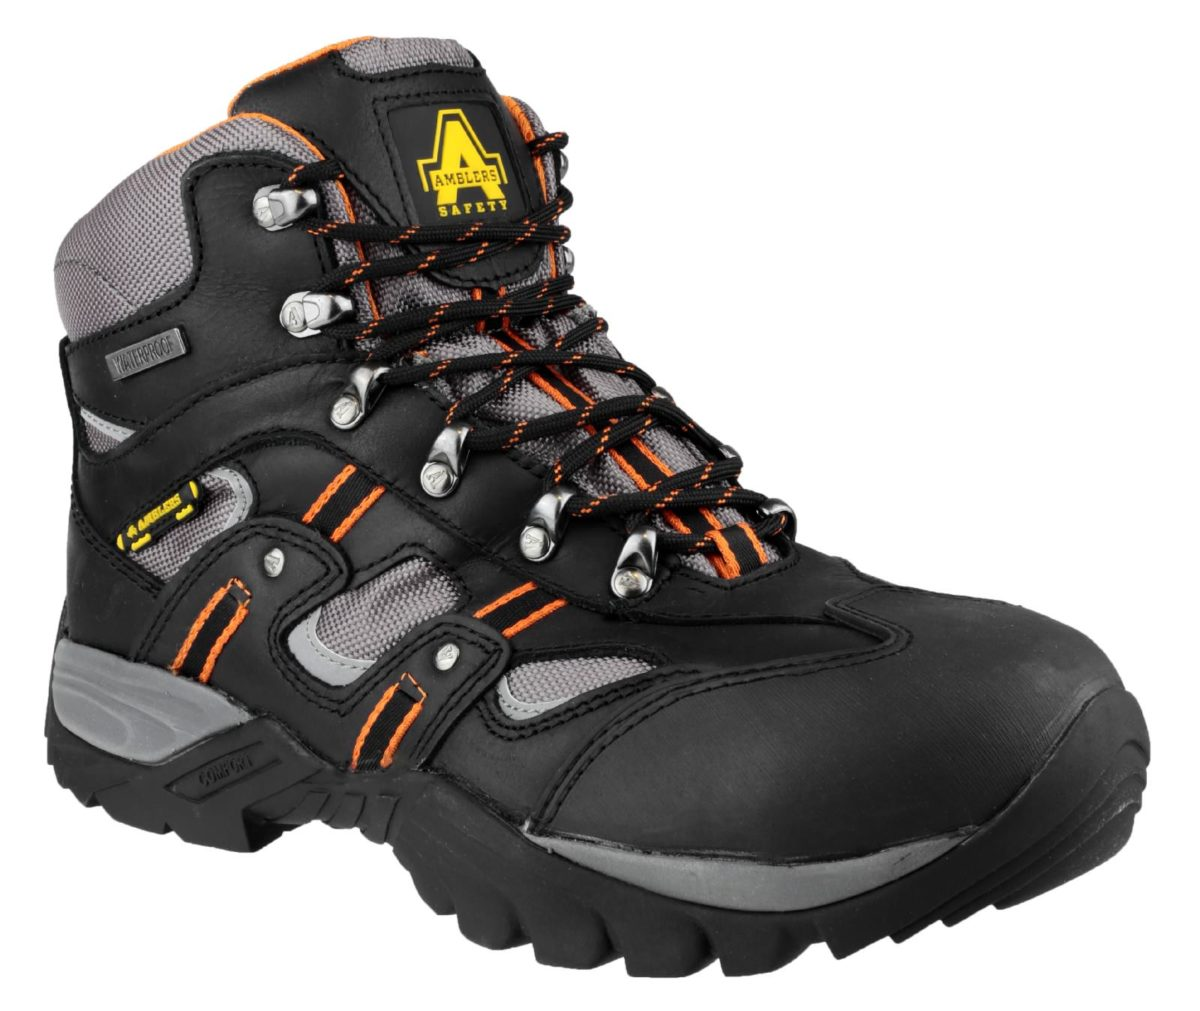 Amblers FS193n Waterproof Hiker Safety Boot